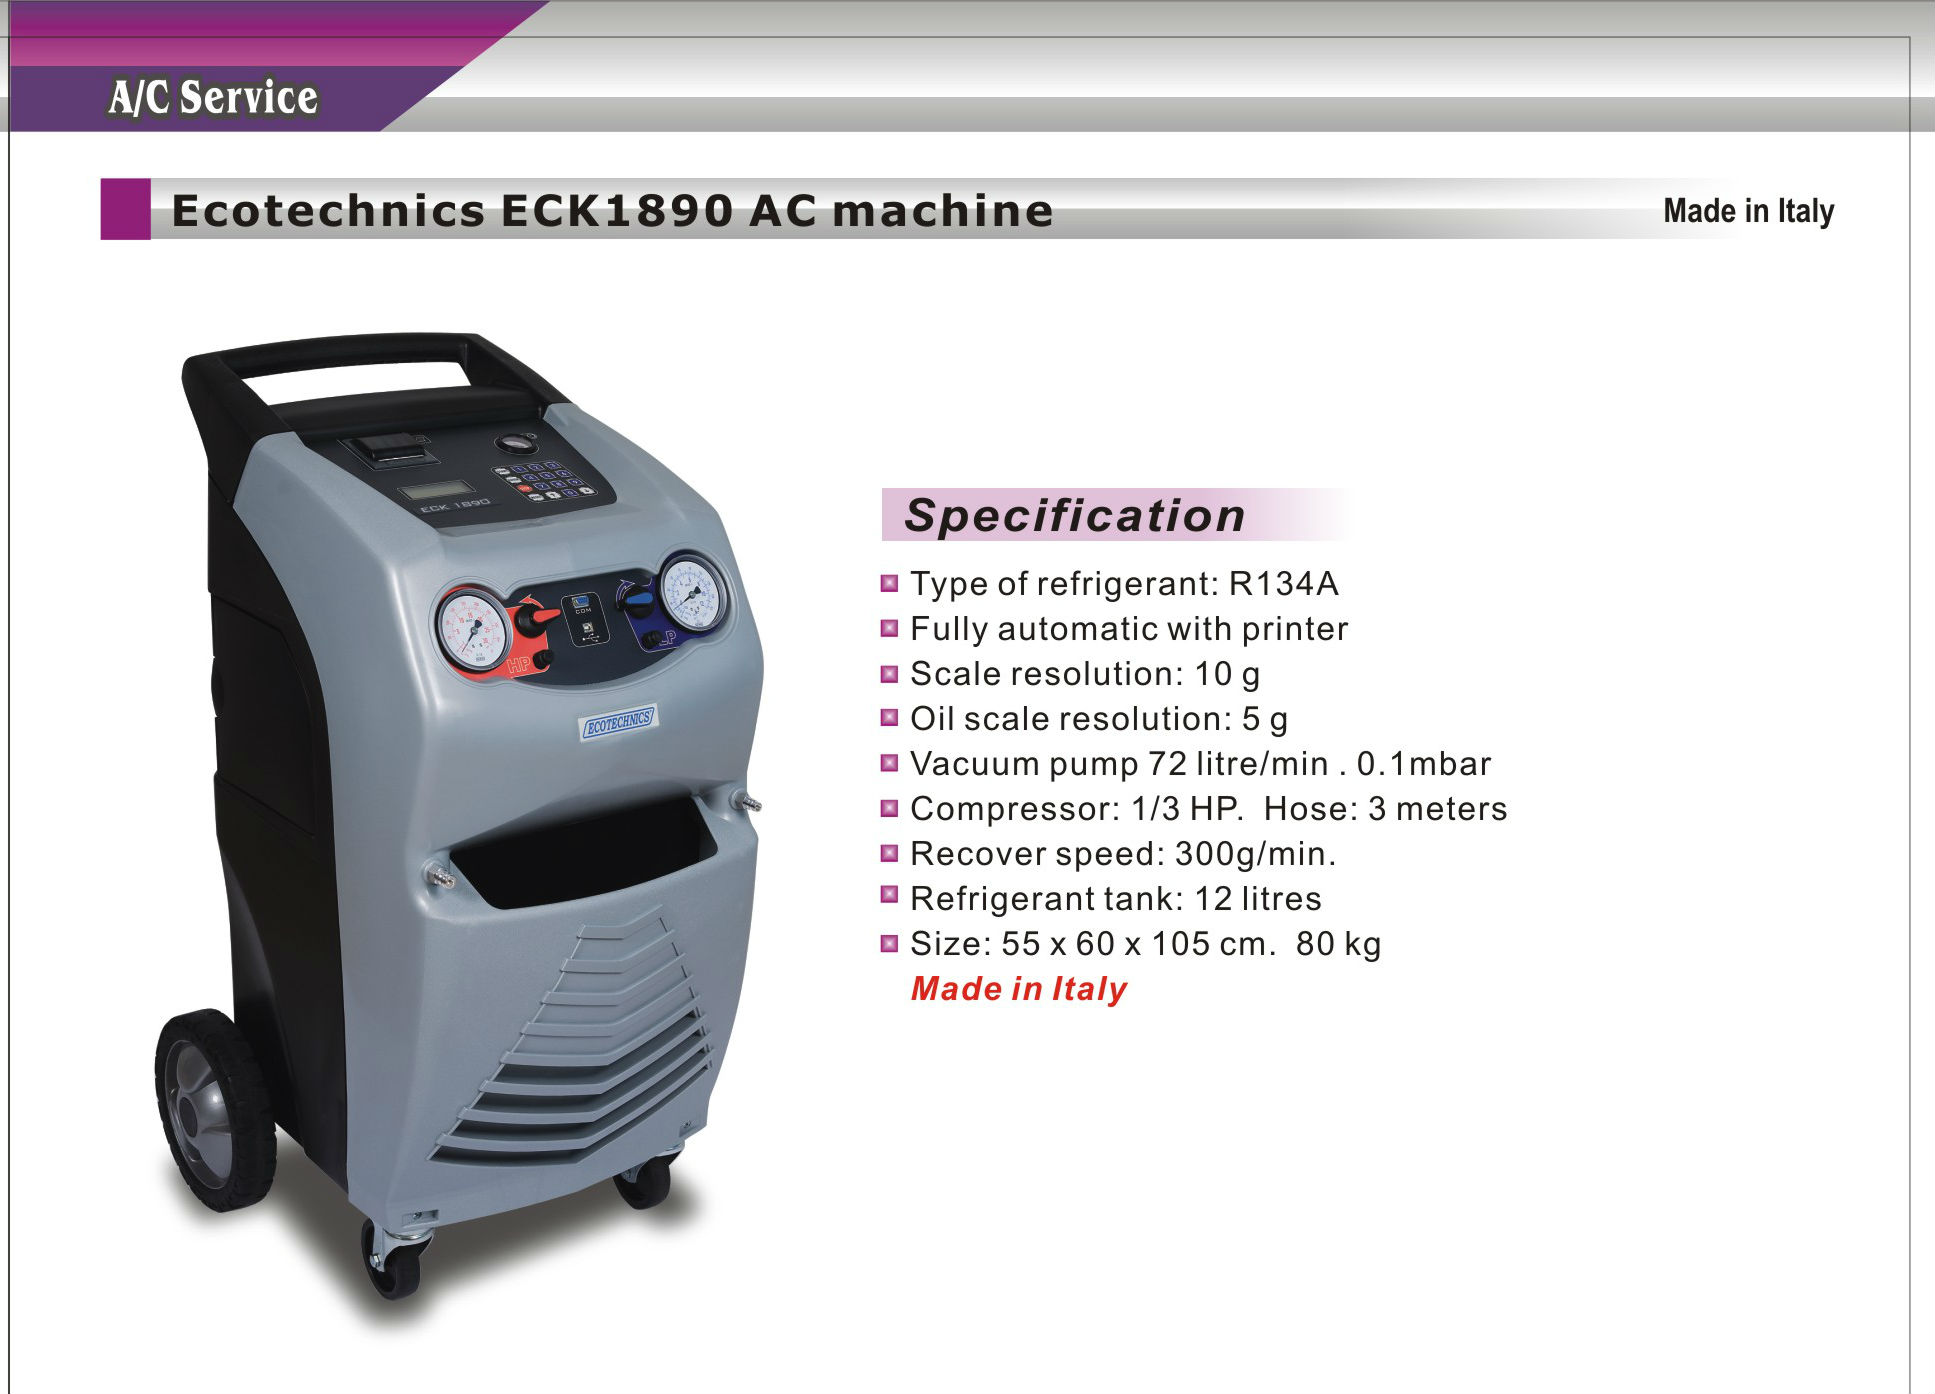 Ecotechnics Eck1890 Full Automatic Ac Machine Made In